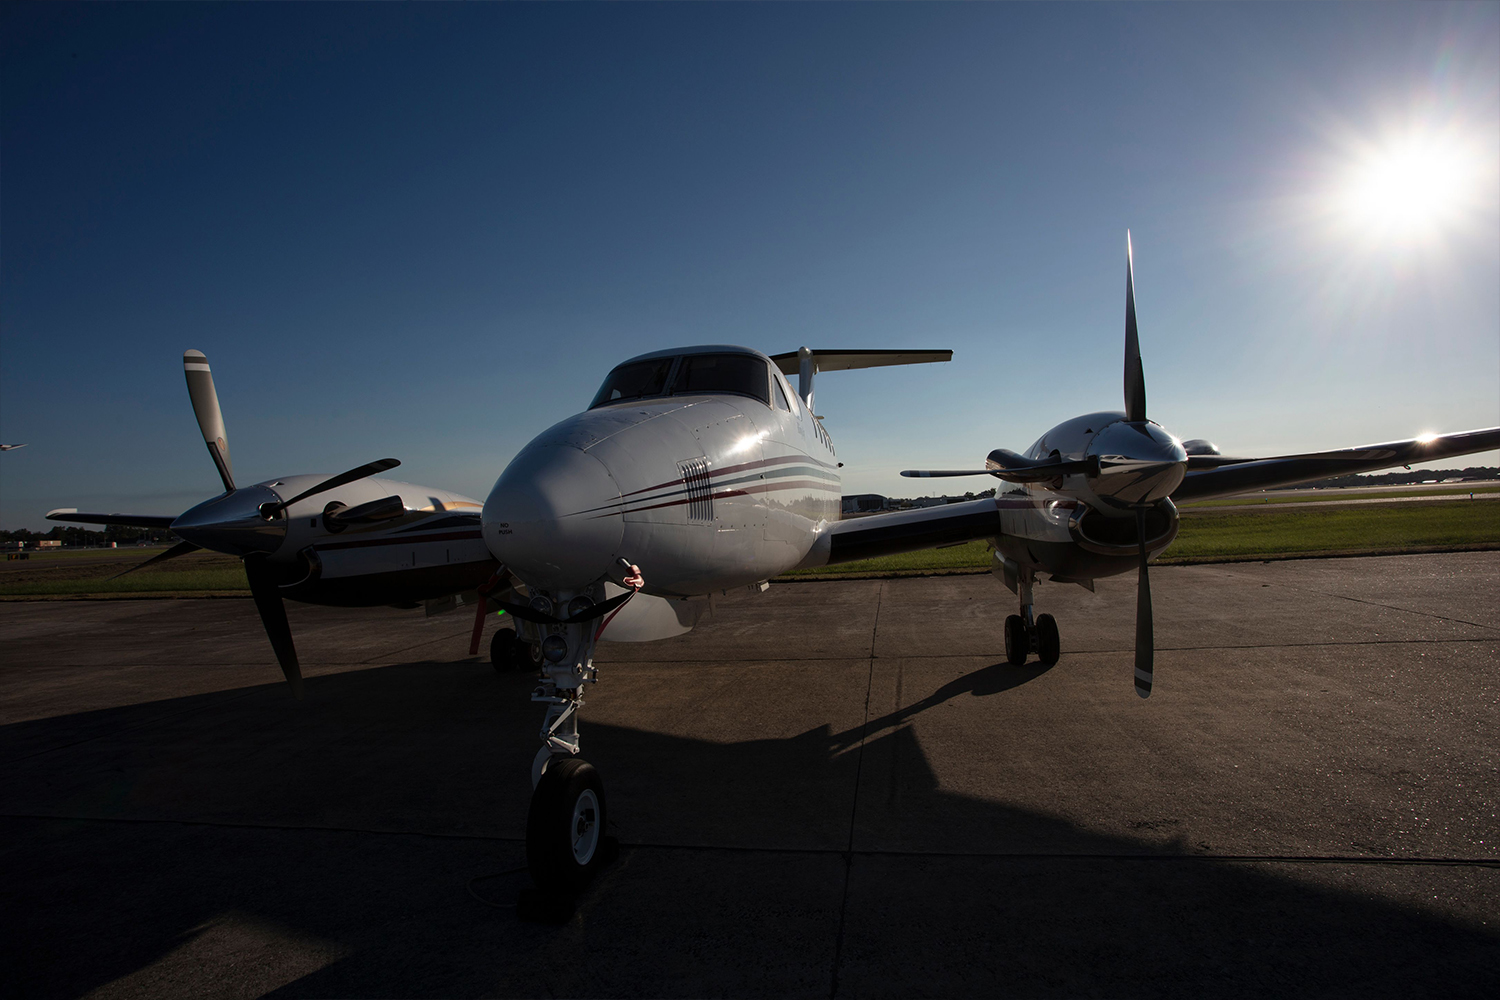 BTR Air Charter - King Air BE200 - Exterior Turbo Prop Charter Flights from BTR